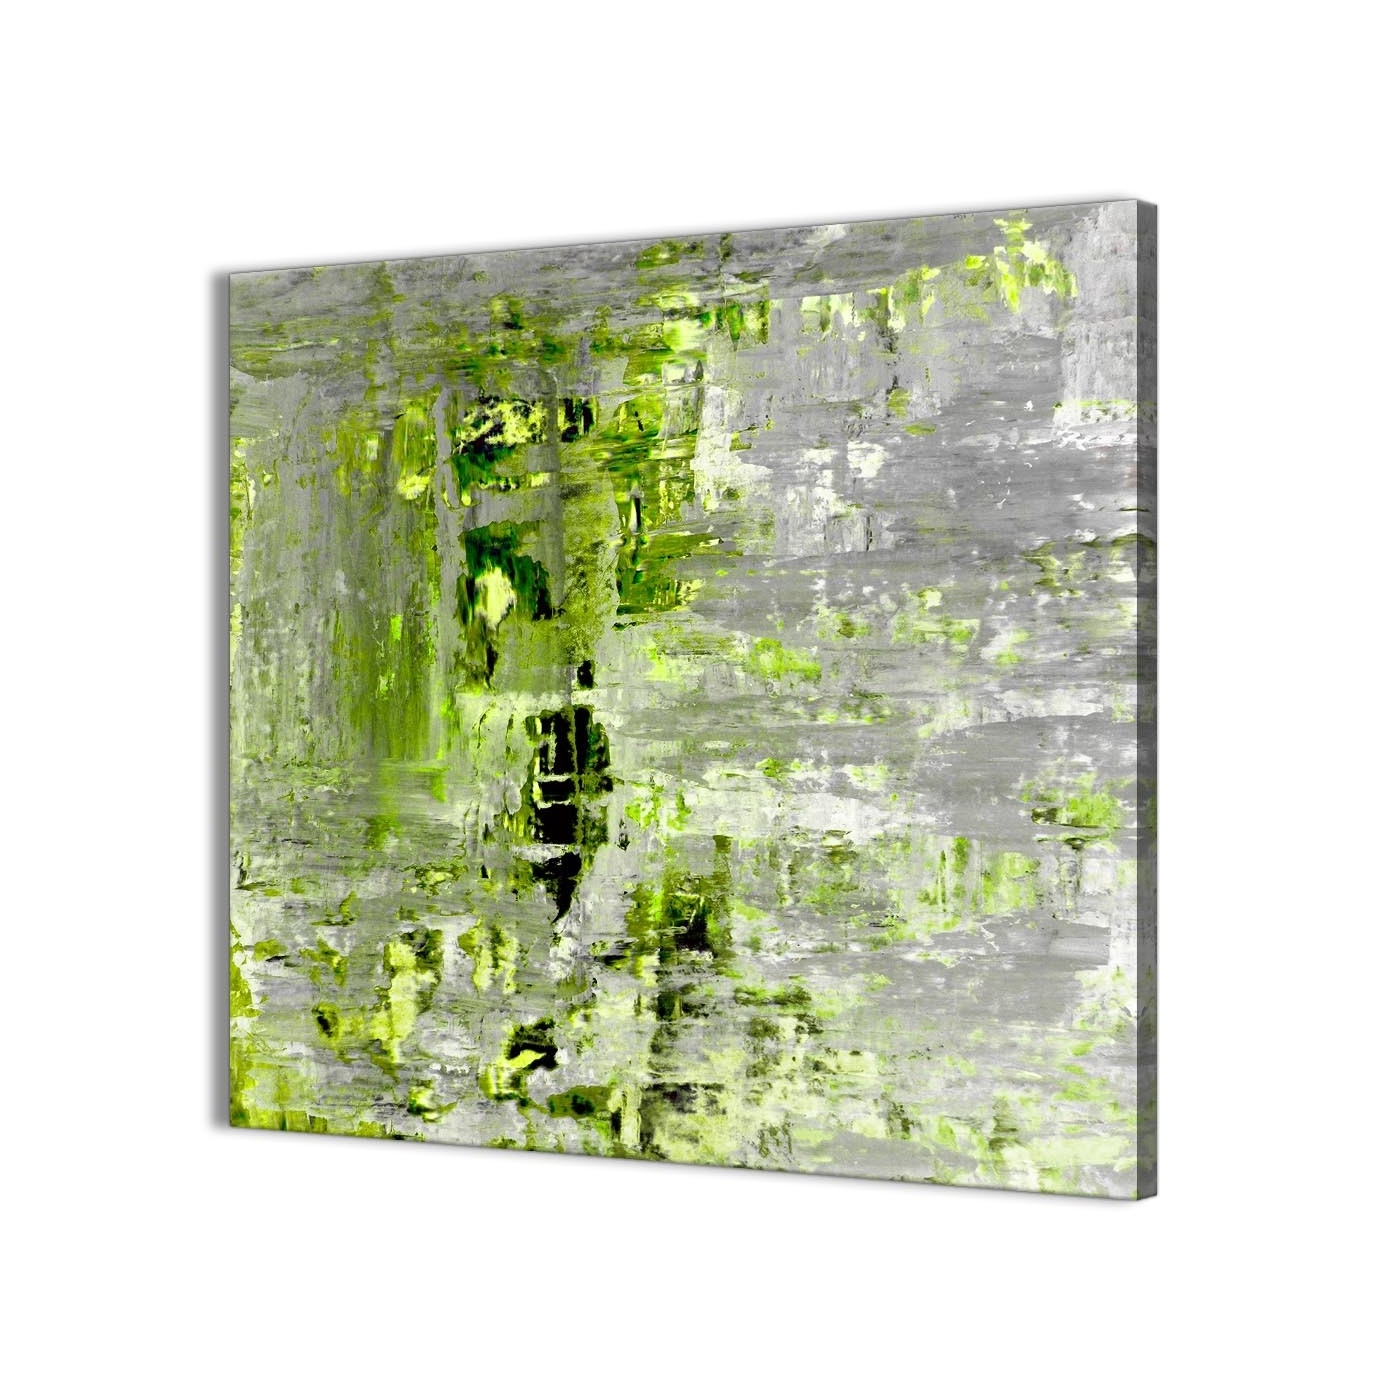 Preferred Green Canvas Wall Art For Wall Art Designs Green Wall Art 3 Green Canvas Wall Decor Large  (View 11 of 15)